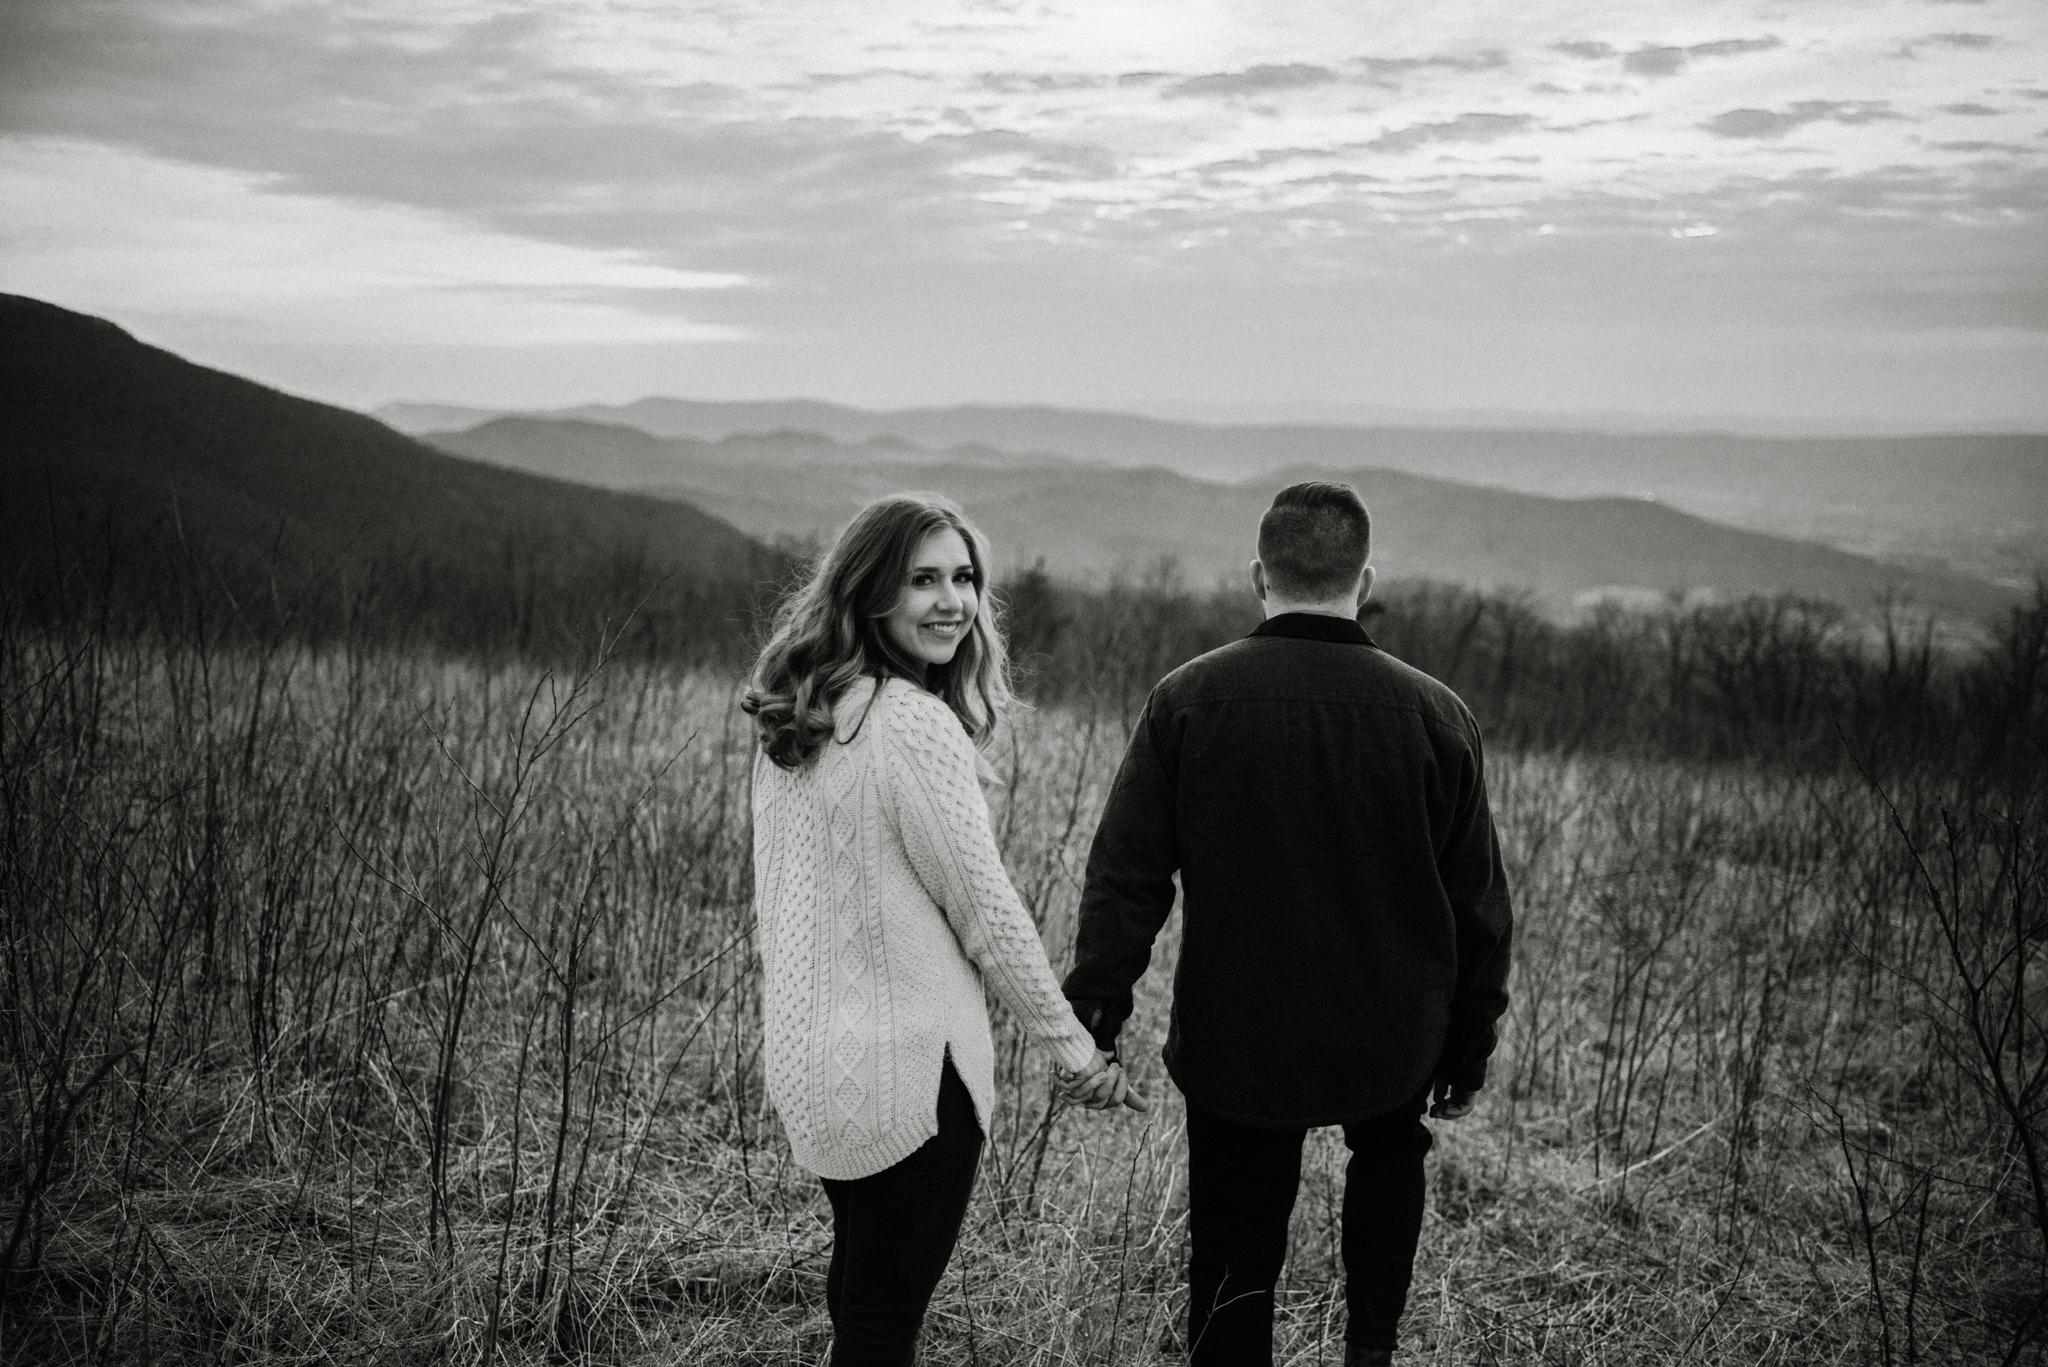 Nicole and Victor - Shenandoah National Park Engagement Photography - Blue Ridge Mountains Adventure Photography - White Sails Creative Photography_42.jpg